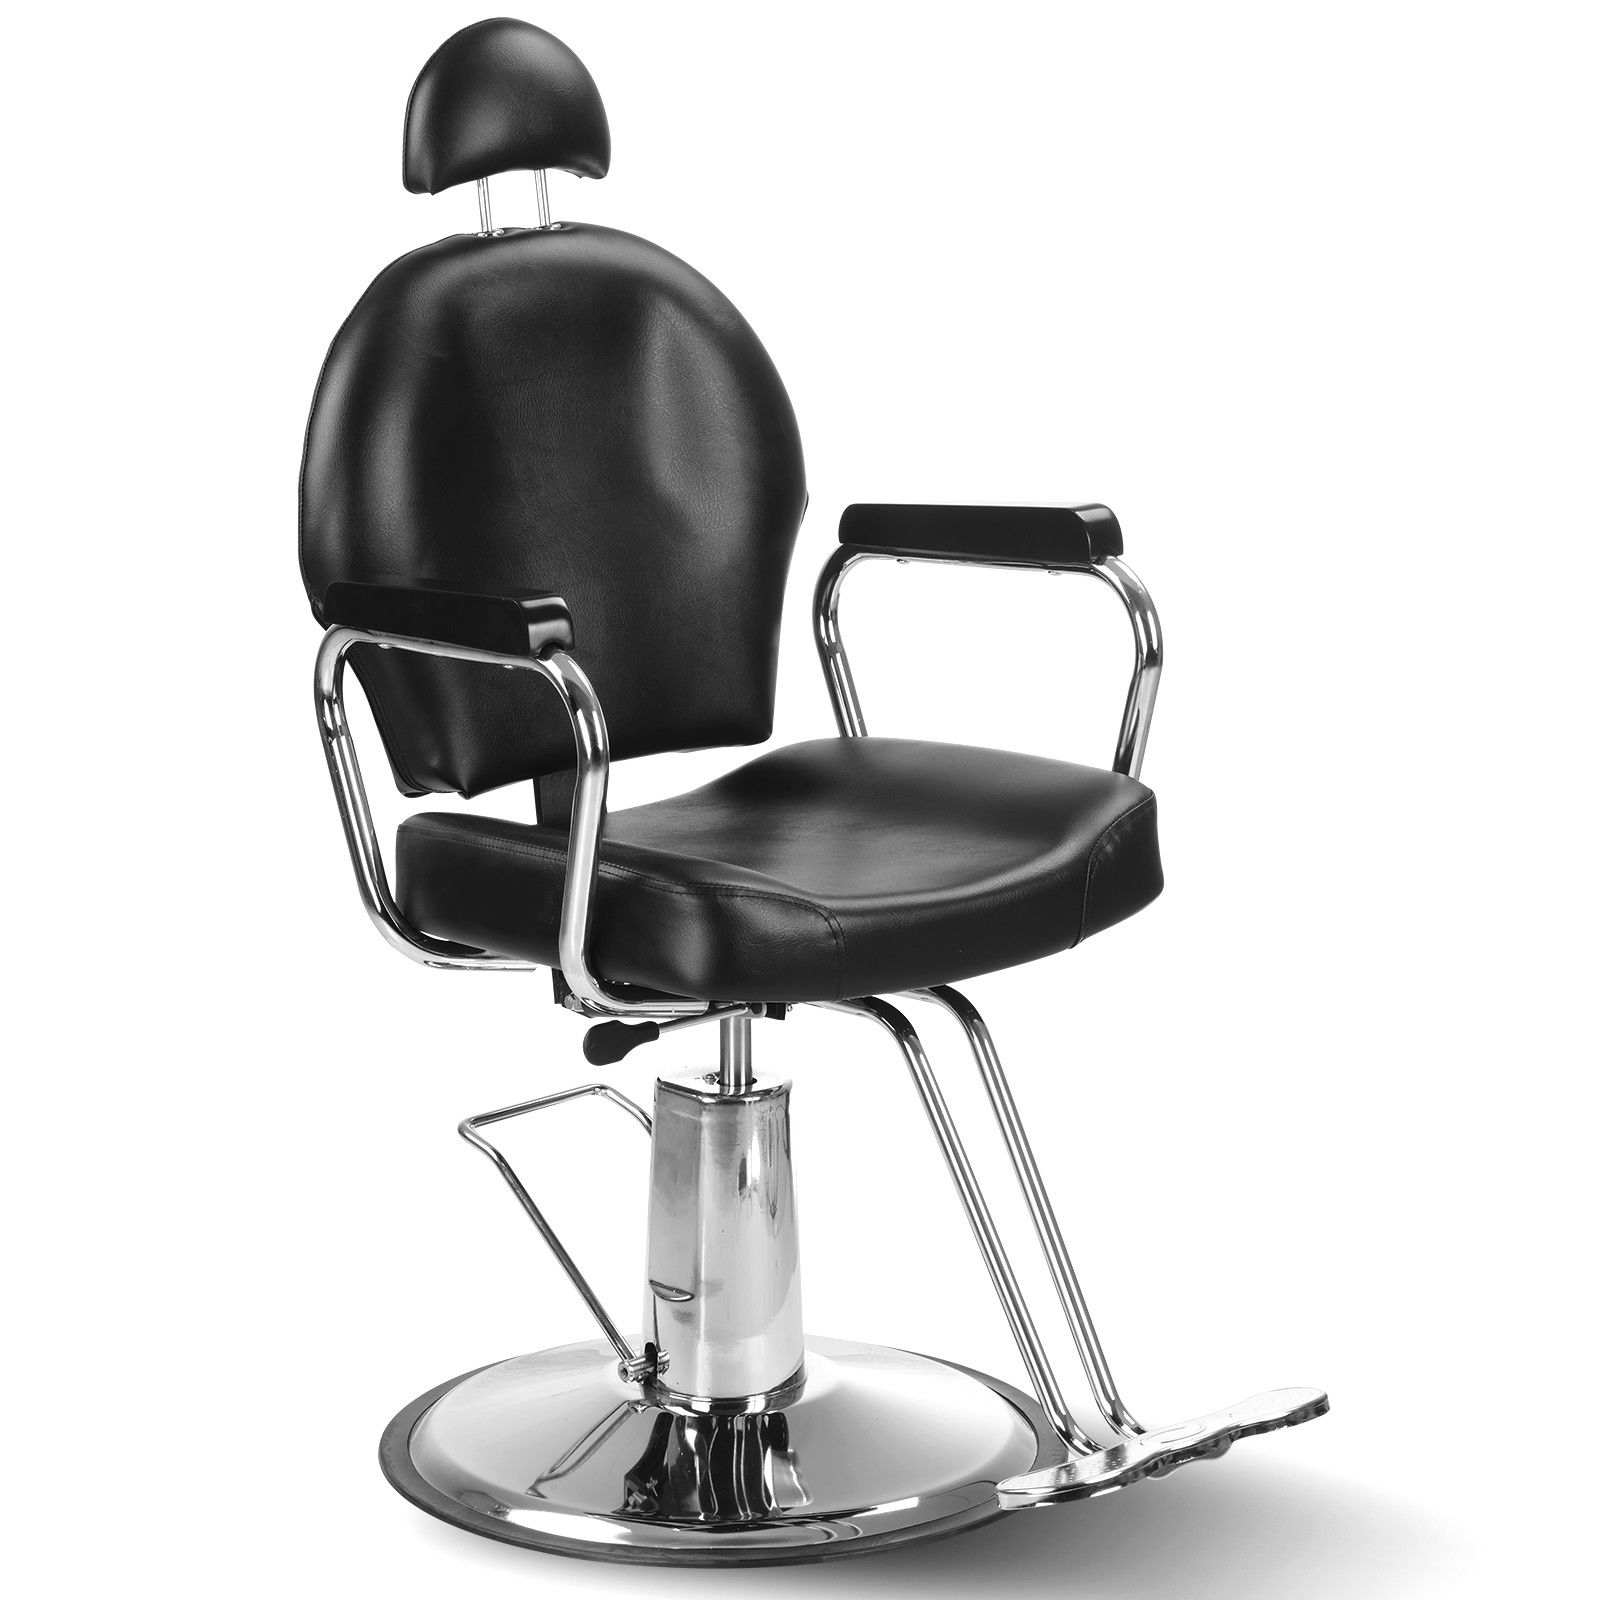 hydraulic barber chair all purpose salon styling swivel grooming black